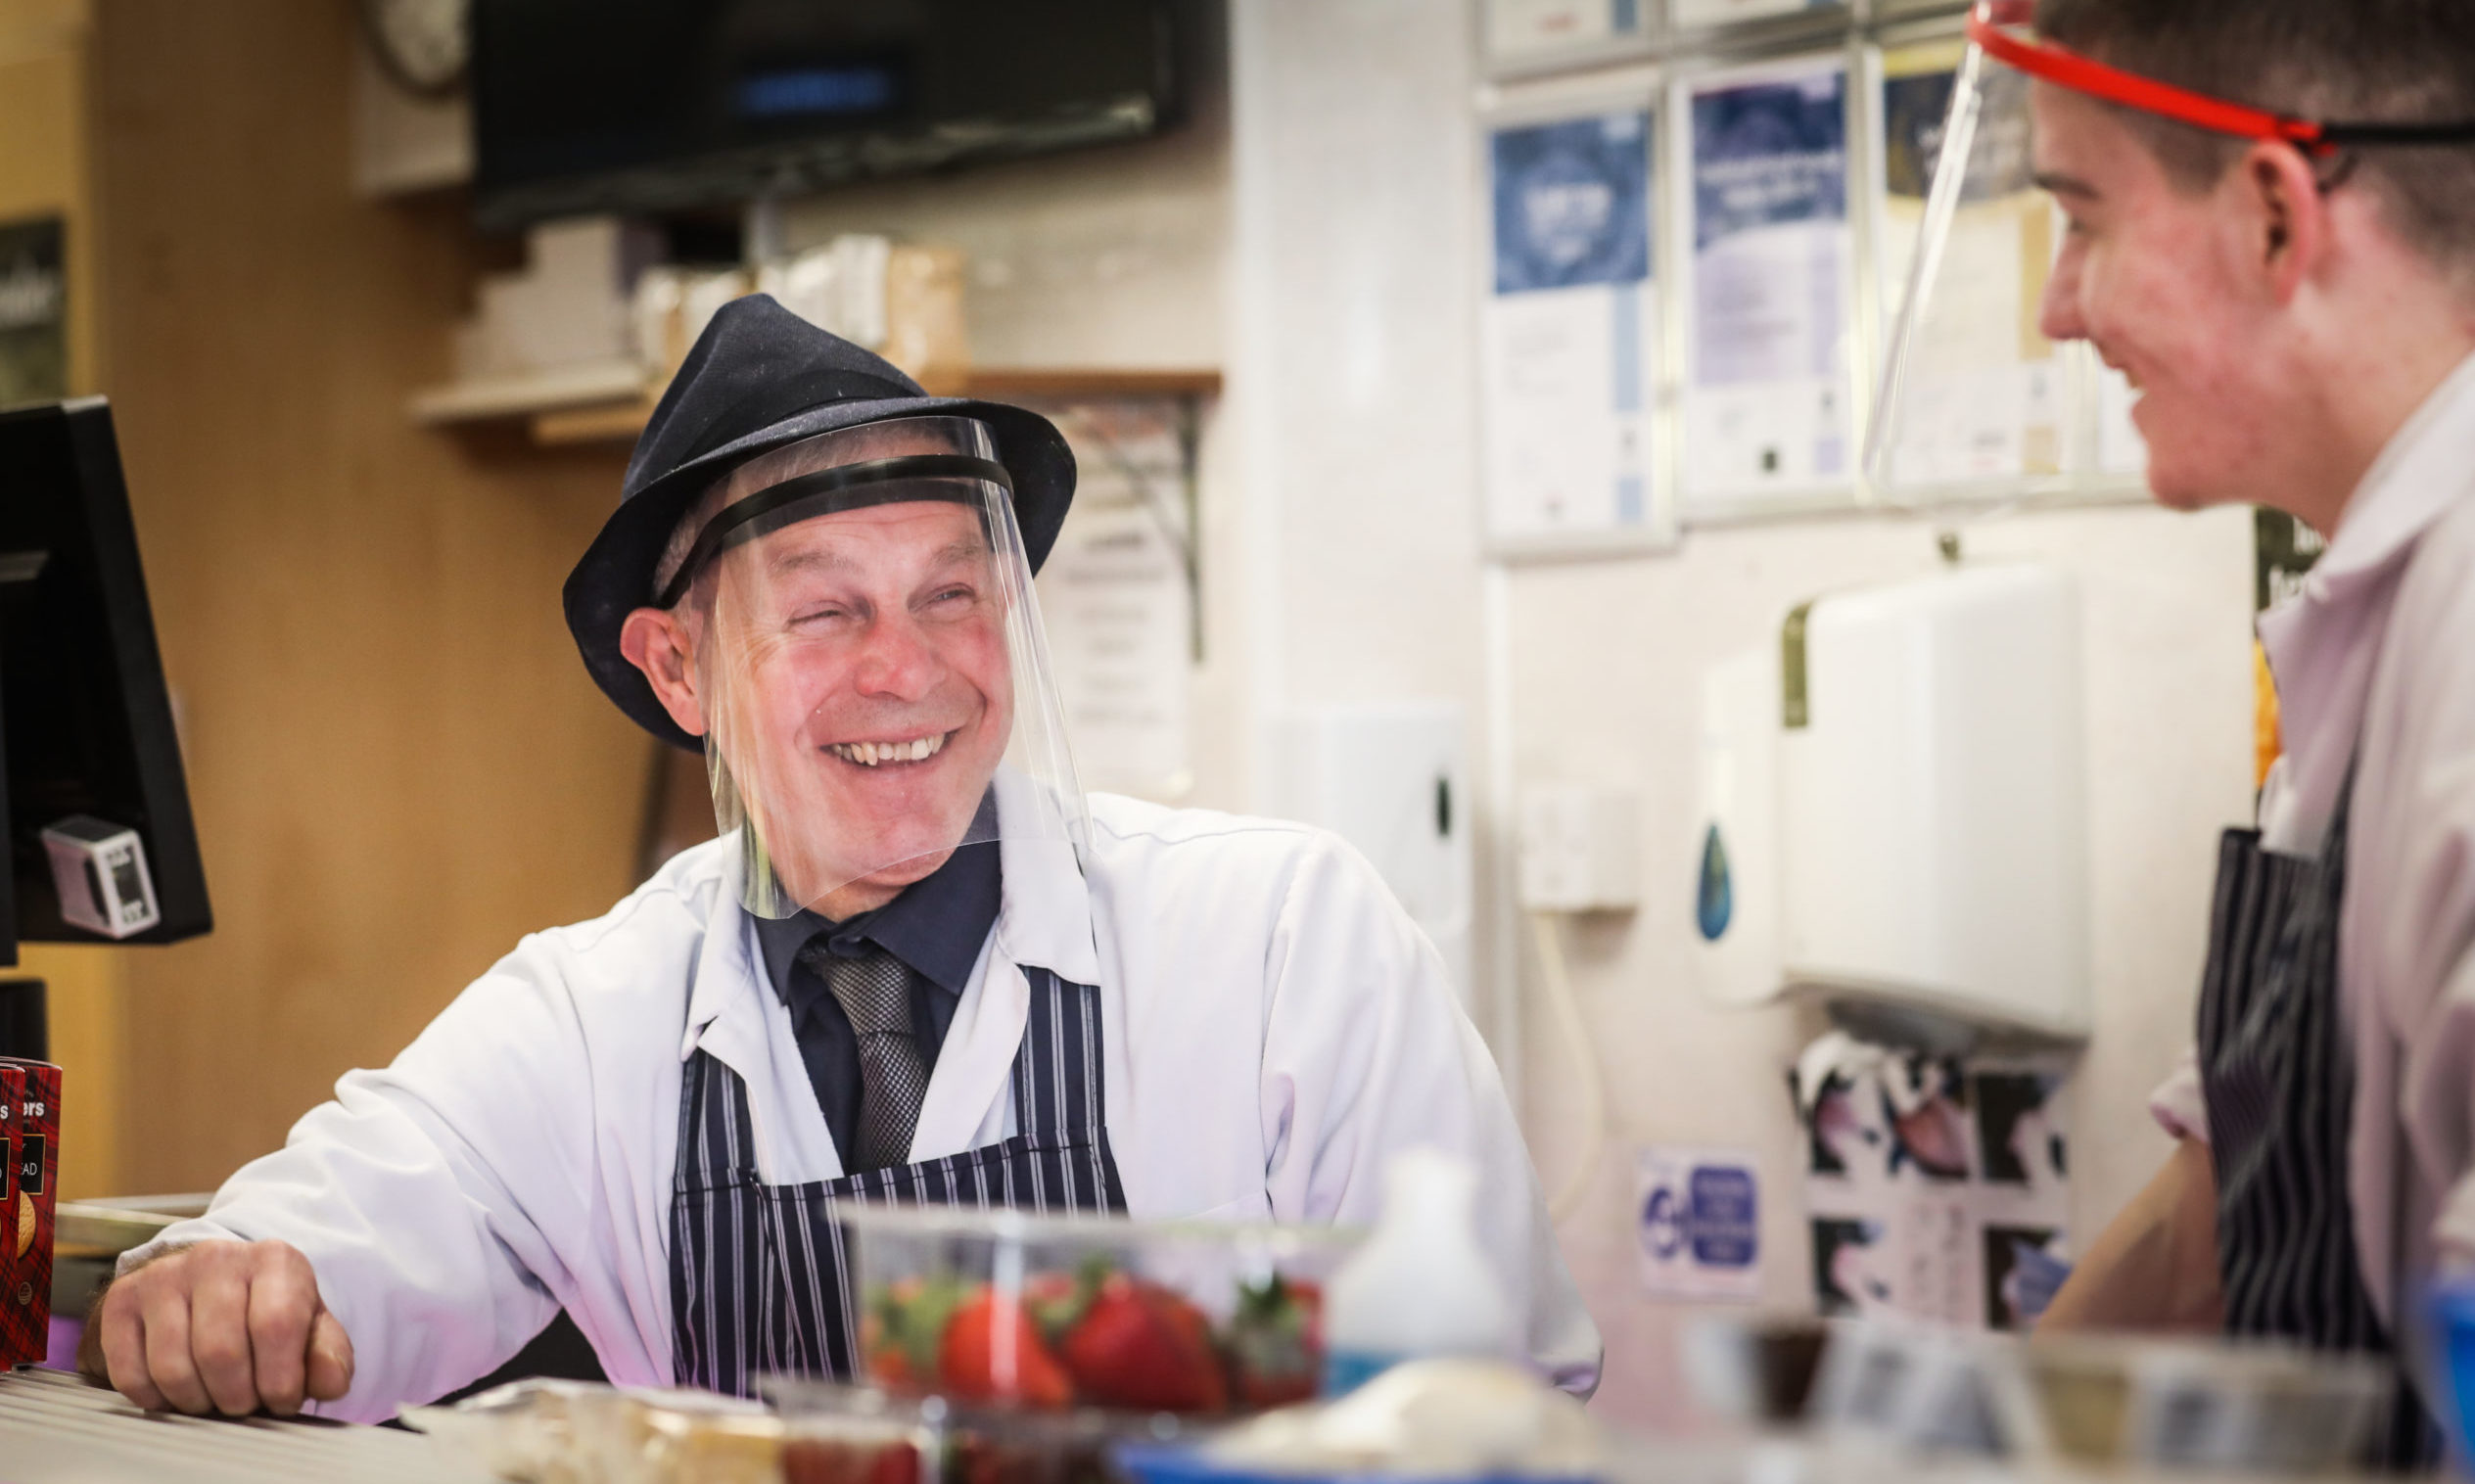 David McNee, a butcher from Hunters wears a facemask while he serves customers.